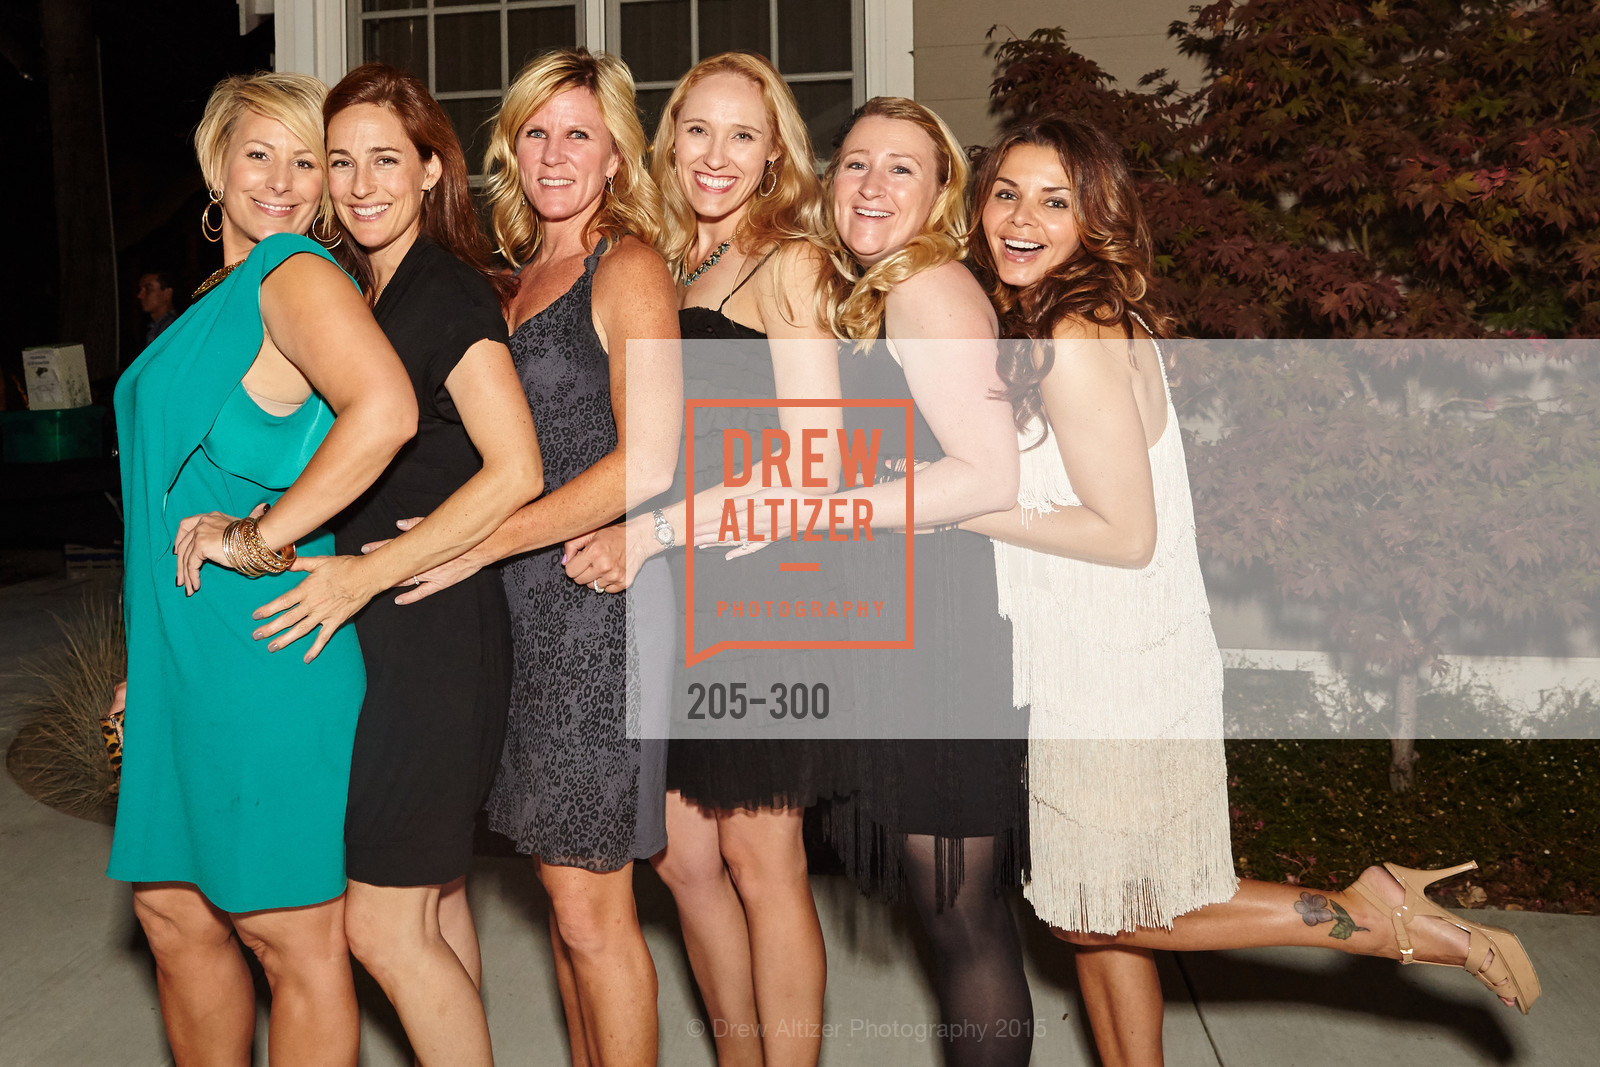 Sissy Demerritt, Karlee Holden, Kim Simon, Anita Sandover, Kelly Hall, Christine Merritt, Breast Cancer Awareness Fund Presents This Old Bag Silicon Valley Preview Party, Private Residence, September 19th, 2015,Drew Altizer, Drew Altizer Photography, full-service agency, private events, San Francisco photographer, photographer california